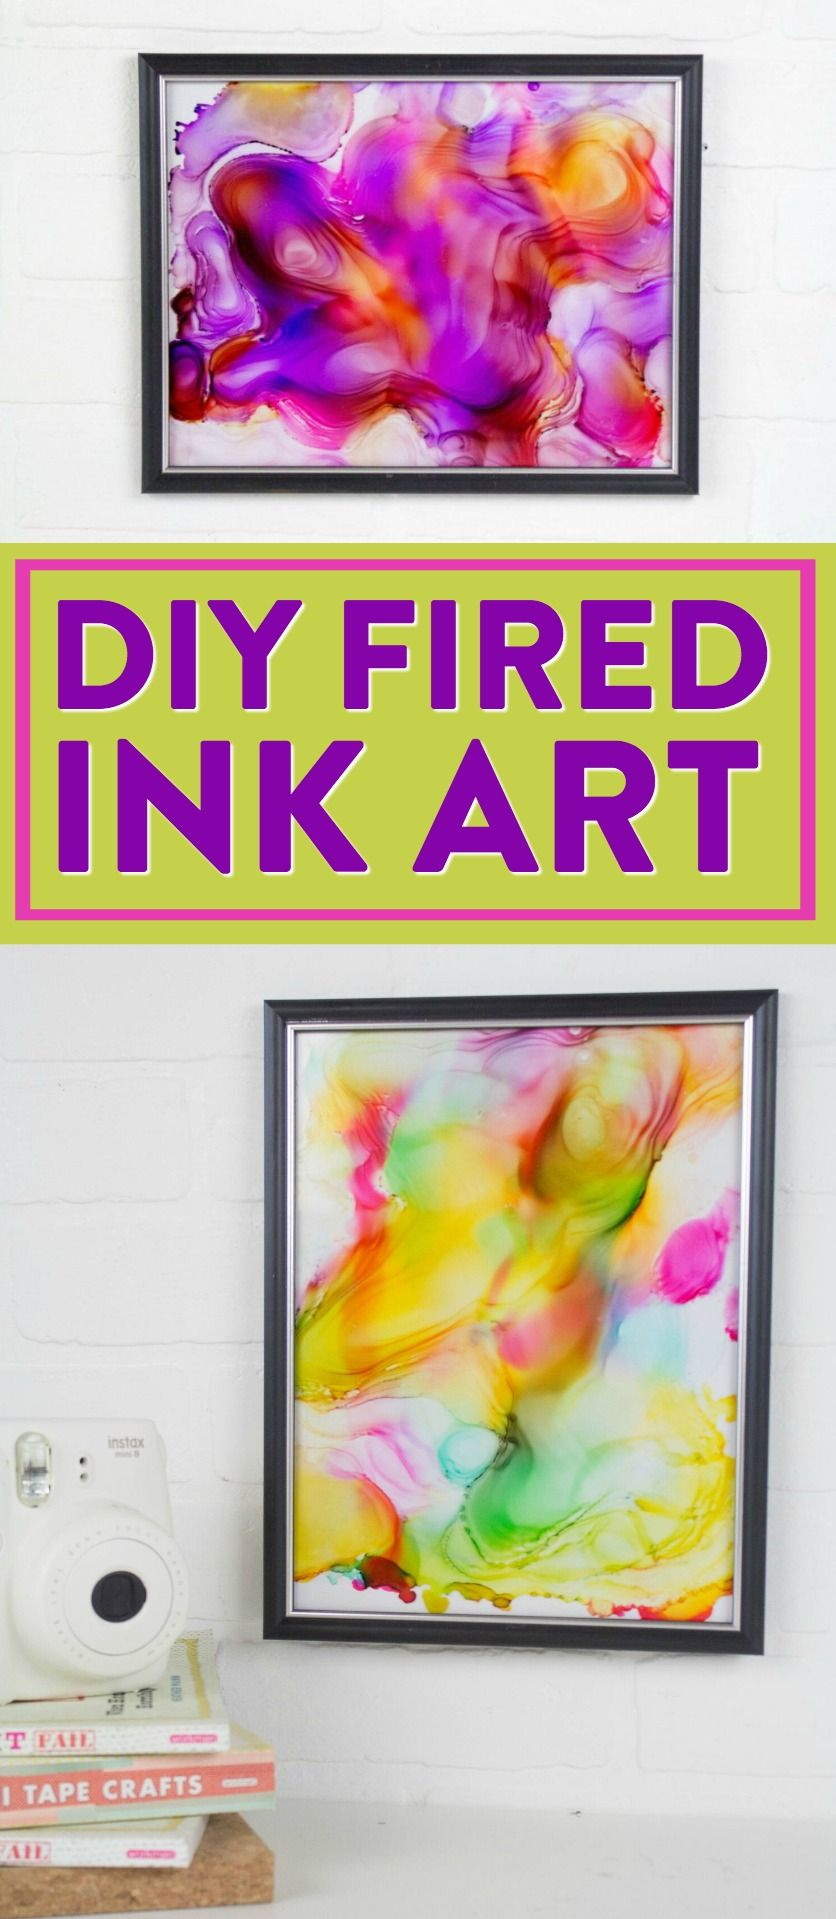 DIY Fired Ink Art | Ink art, Crafts and Diy wall art